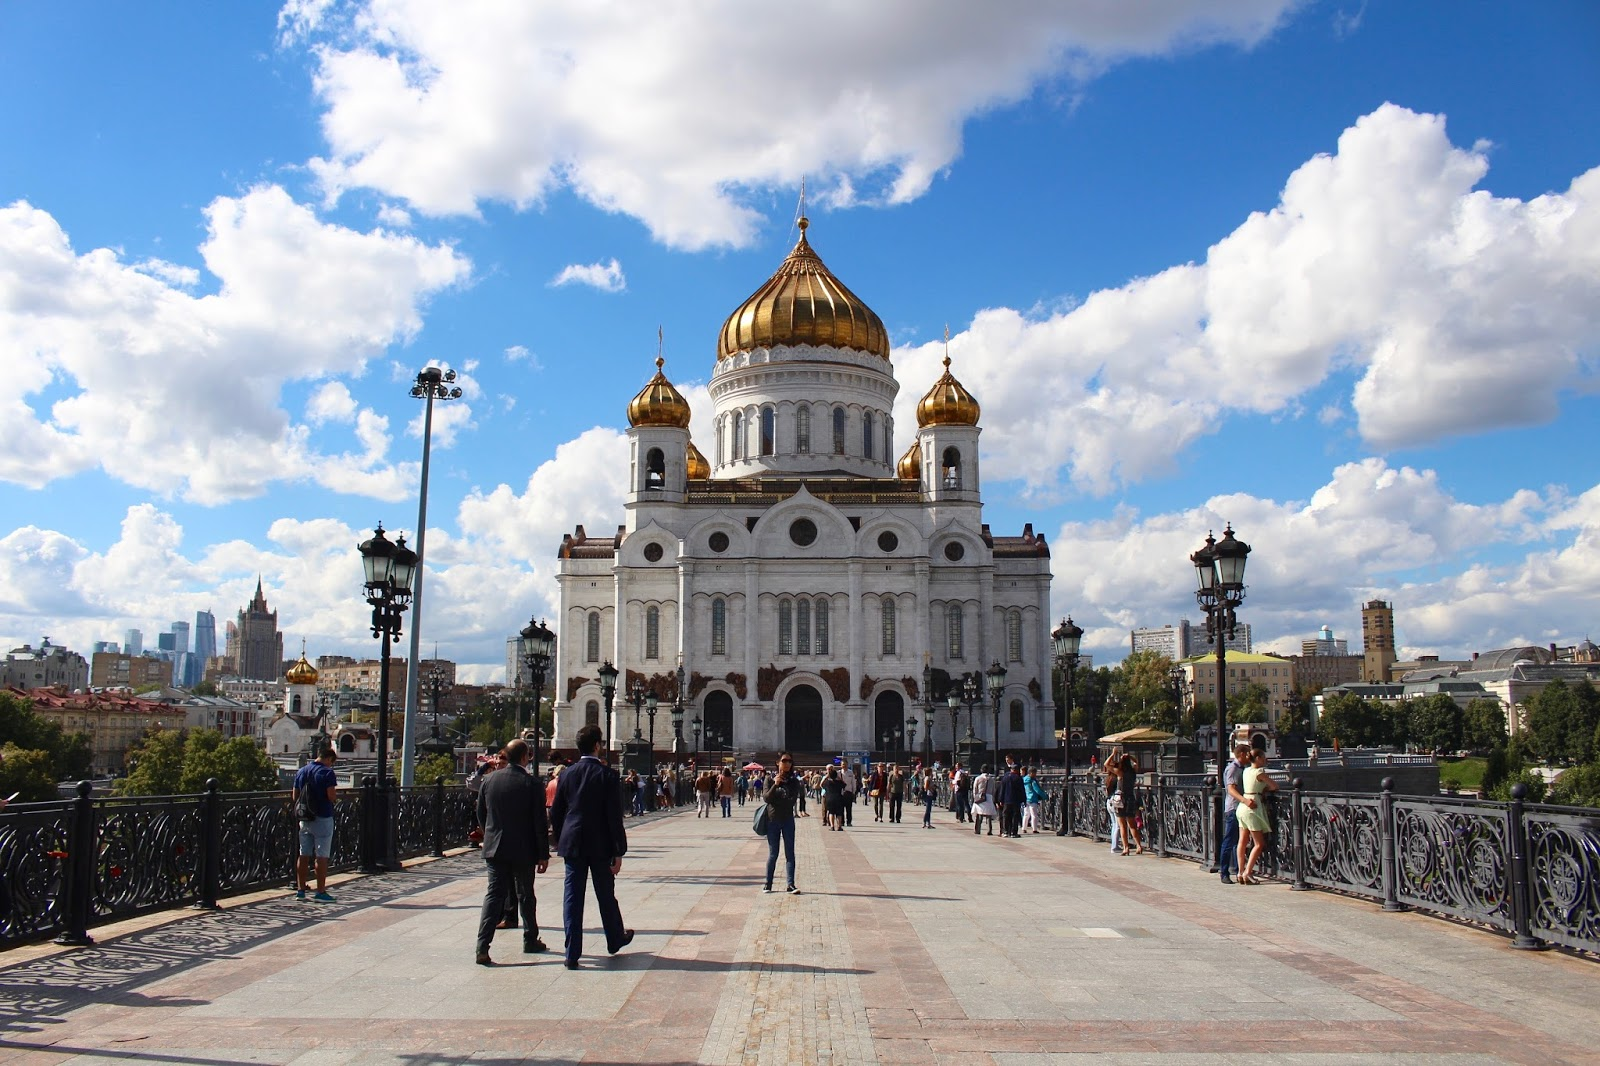 Cathedral of Christ the Saviour & Patriarshiy bridge